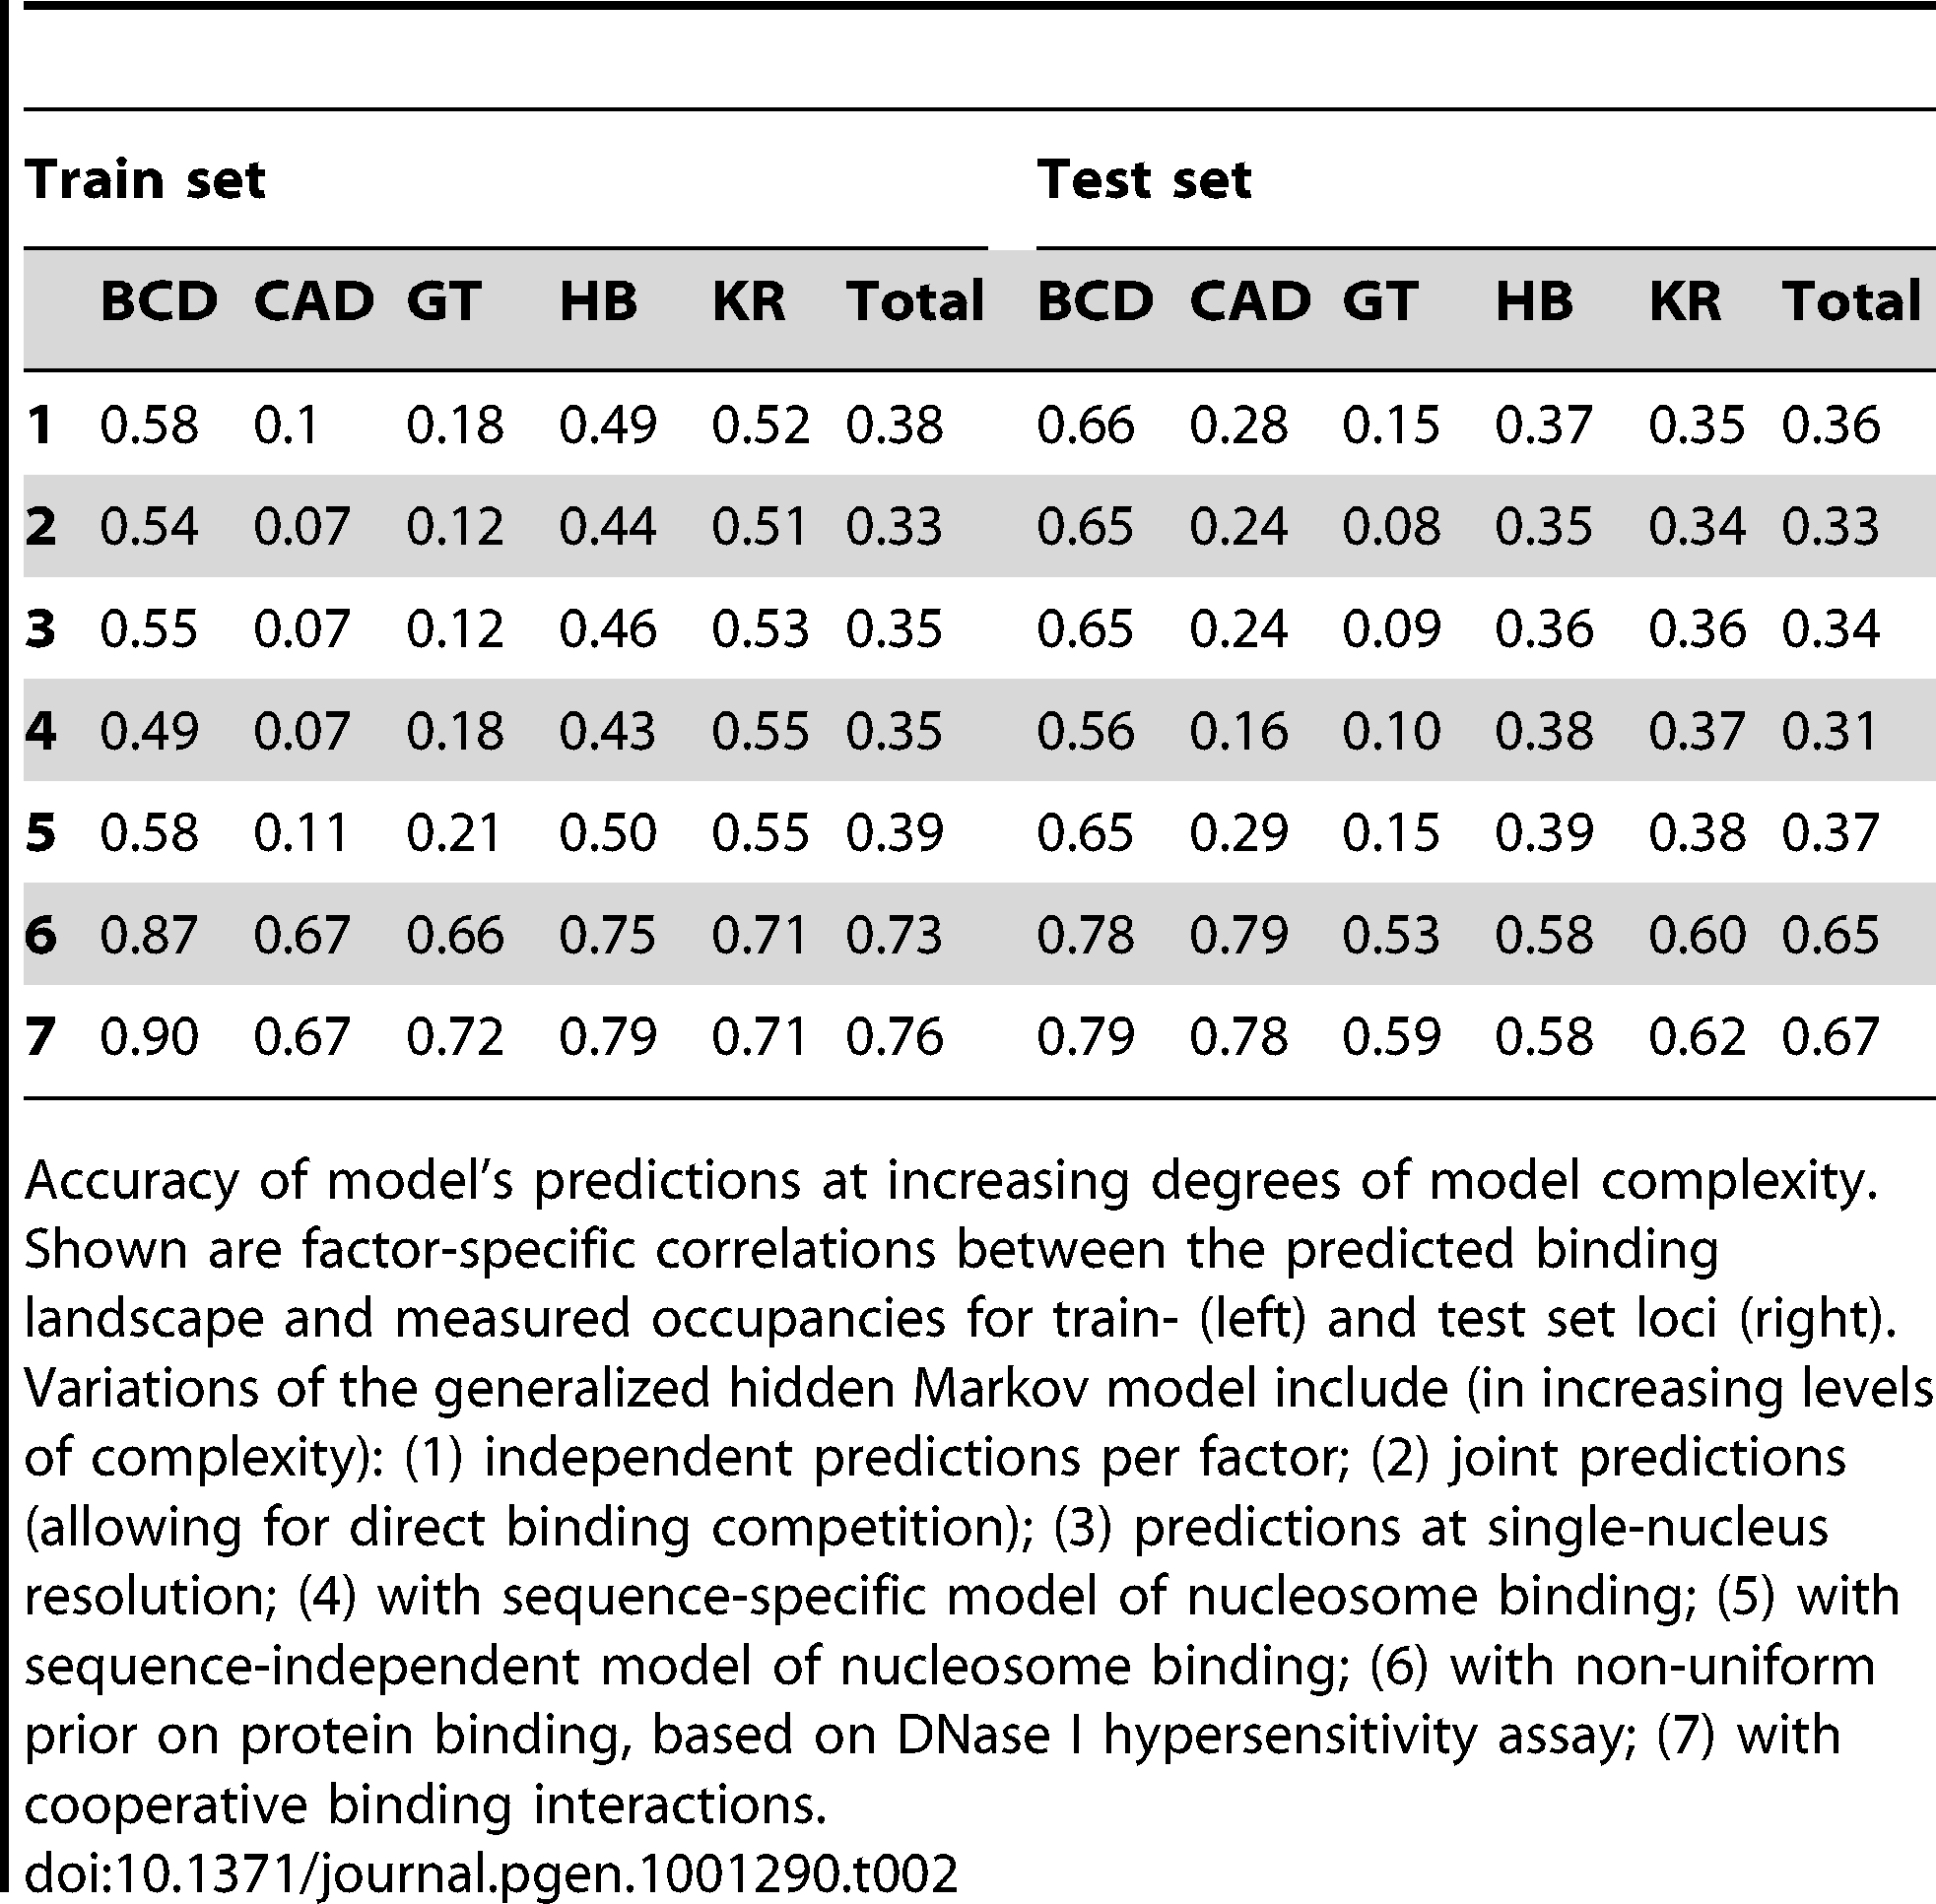 Factor-specific accuracy at increasing degrees of model complexity.